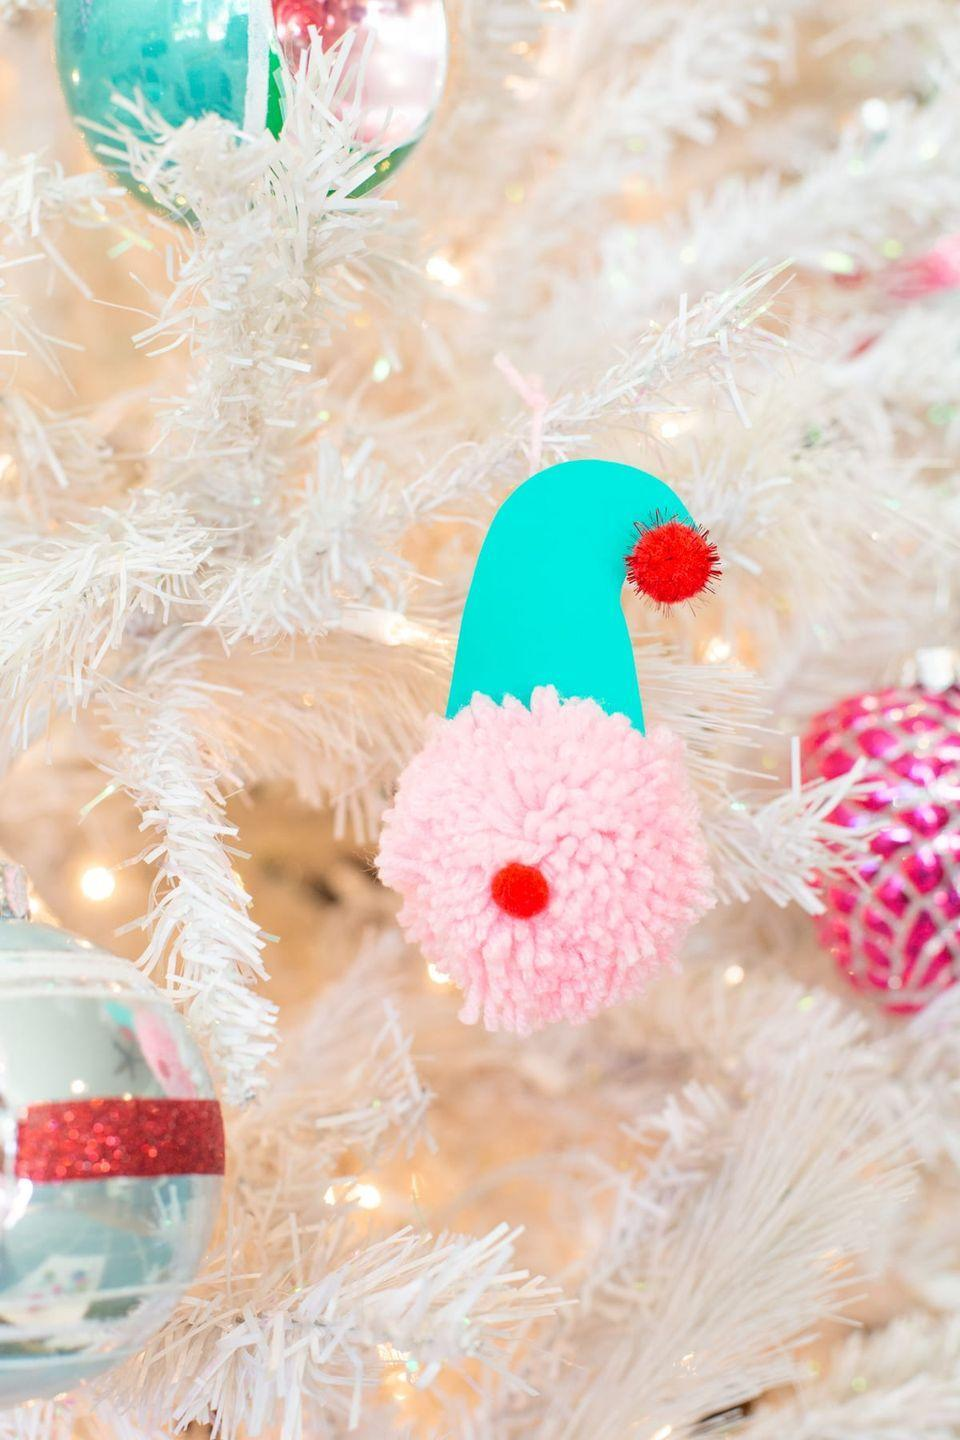 """<p>Make your own pom-pom-tastic Santas, reindeer, elves, and more with these adorable ornaments. The instructions include steps to make your own pom-poms too!</p><p><strong>Get the tutorial at <a href=""""https://lovelyindeed.com/pom-pom-christmas-ornaments-family-holiday-tradition/"""" rel=""""nofollow noopener"""" target=""""_blank"""" data-ylk=""""slk:Lovely Indeed"""" class=""""link rapid-noclick-resp"""">Lovely Indeed</a>.</strong></p><p><strong><a class=""""link rapid-noclick-resp"""" href=""""https://www.amazon.com/Pompom-Different-Pom-pom-Weaver-Knitting/dp/B01N4BKCC5/ref=sr_1_4?tag=syn-yahoo-20&ascsubtag=%5Bartid%7C10050.g.1070%5Bsrc%7Cyahoo-us"""" rel=""""nofollow noopener"""" target=""""_blank"""" data-ylk=""""slk:SHOP POM-POM MAKERS"""">SHOP POM-POM MAKERS</a><br></strong></p>"""